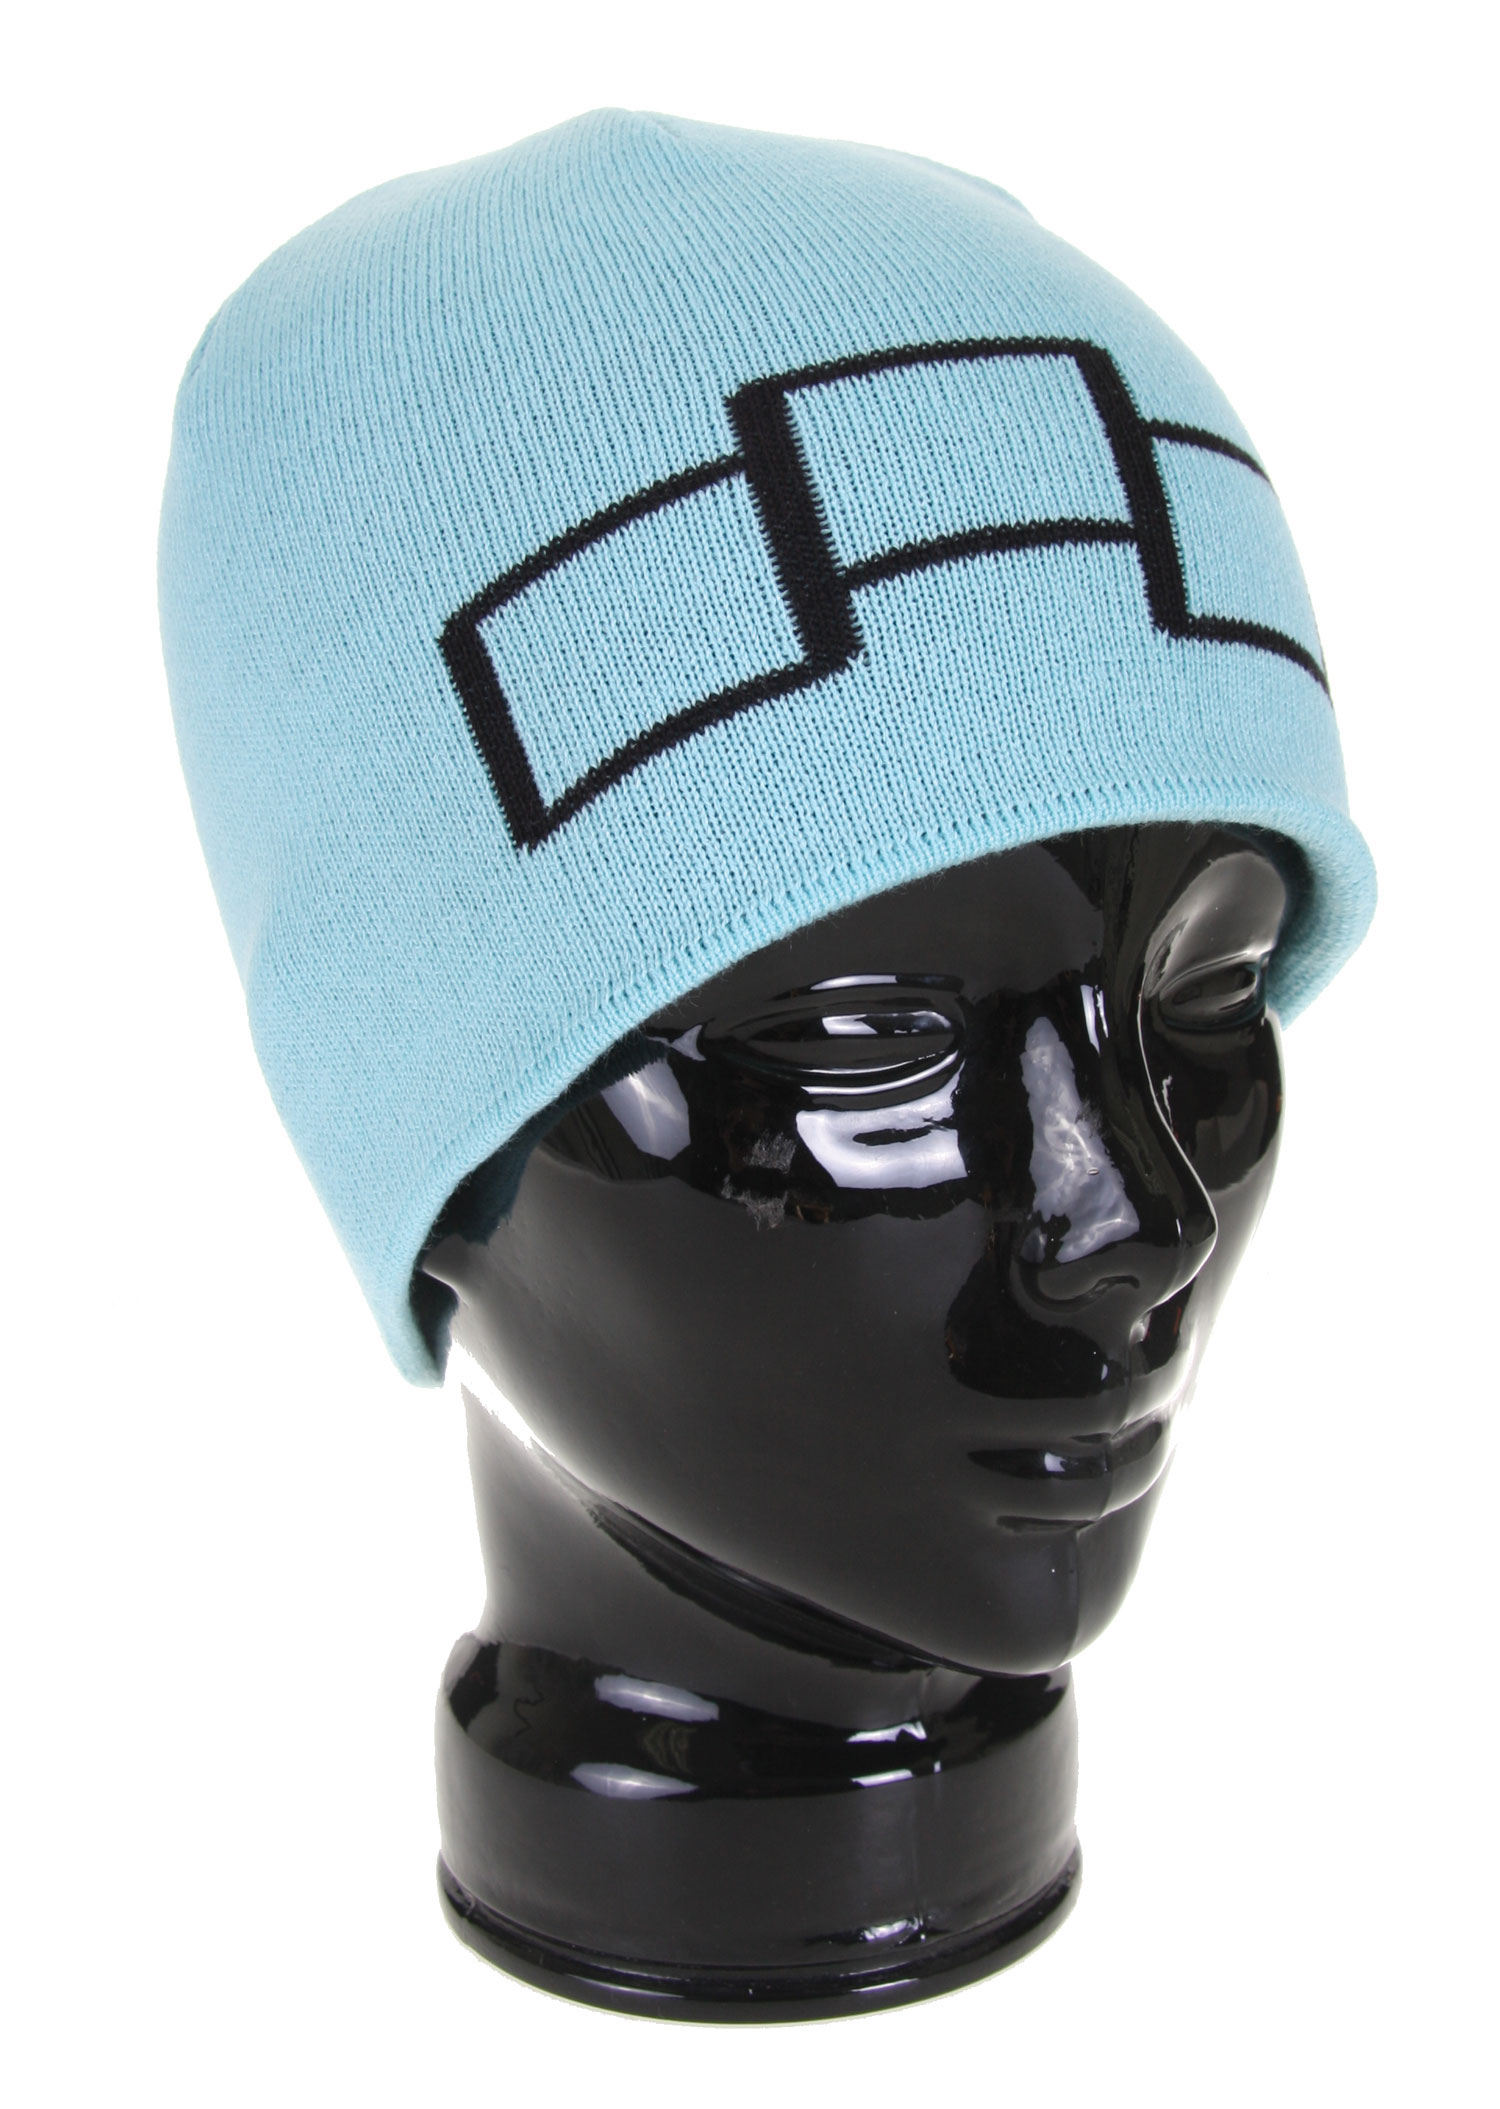 Snowboard Protect your head from the sun and the cold while still showing who your support in this awesome FSQ Icon Beanie. Made from 100 percent soft acrylic, it's always going to be breathable and comfortable, never scratchy like some other beanies. The large front logo is eye-catching and looks great while still remaining simple and classic. This is the perfect beanie for anyone who loves Four Square's products and wants to keep in style while staying warm.Key Features of the Foursquare Fsq Icon Beanie: 100% soft acrylic 12G intarsia Jacquard logo Machine knit - $10.46